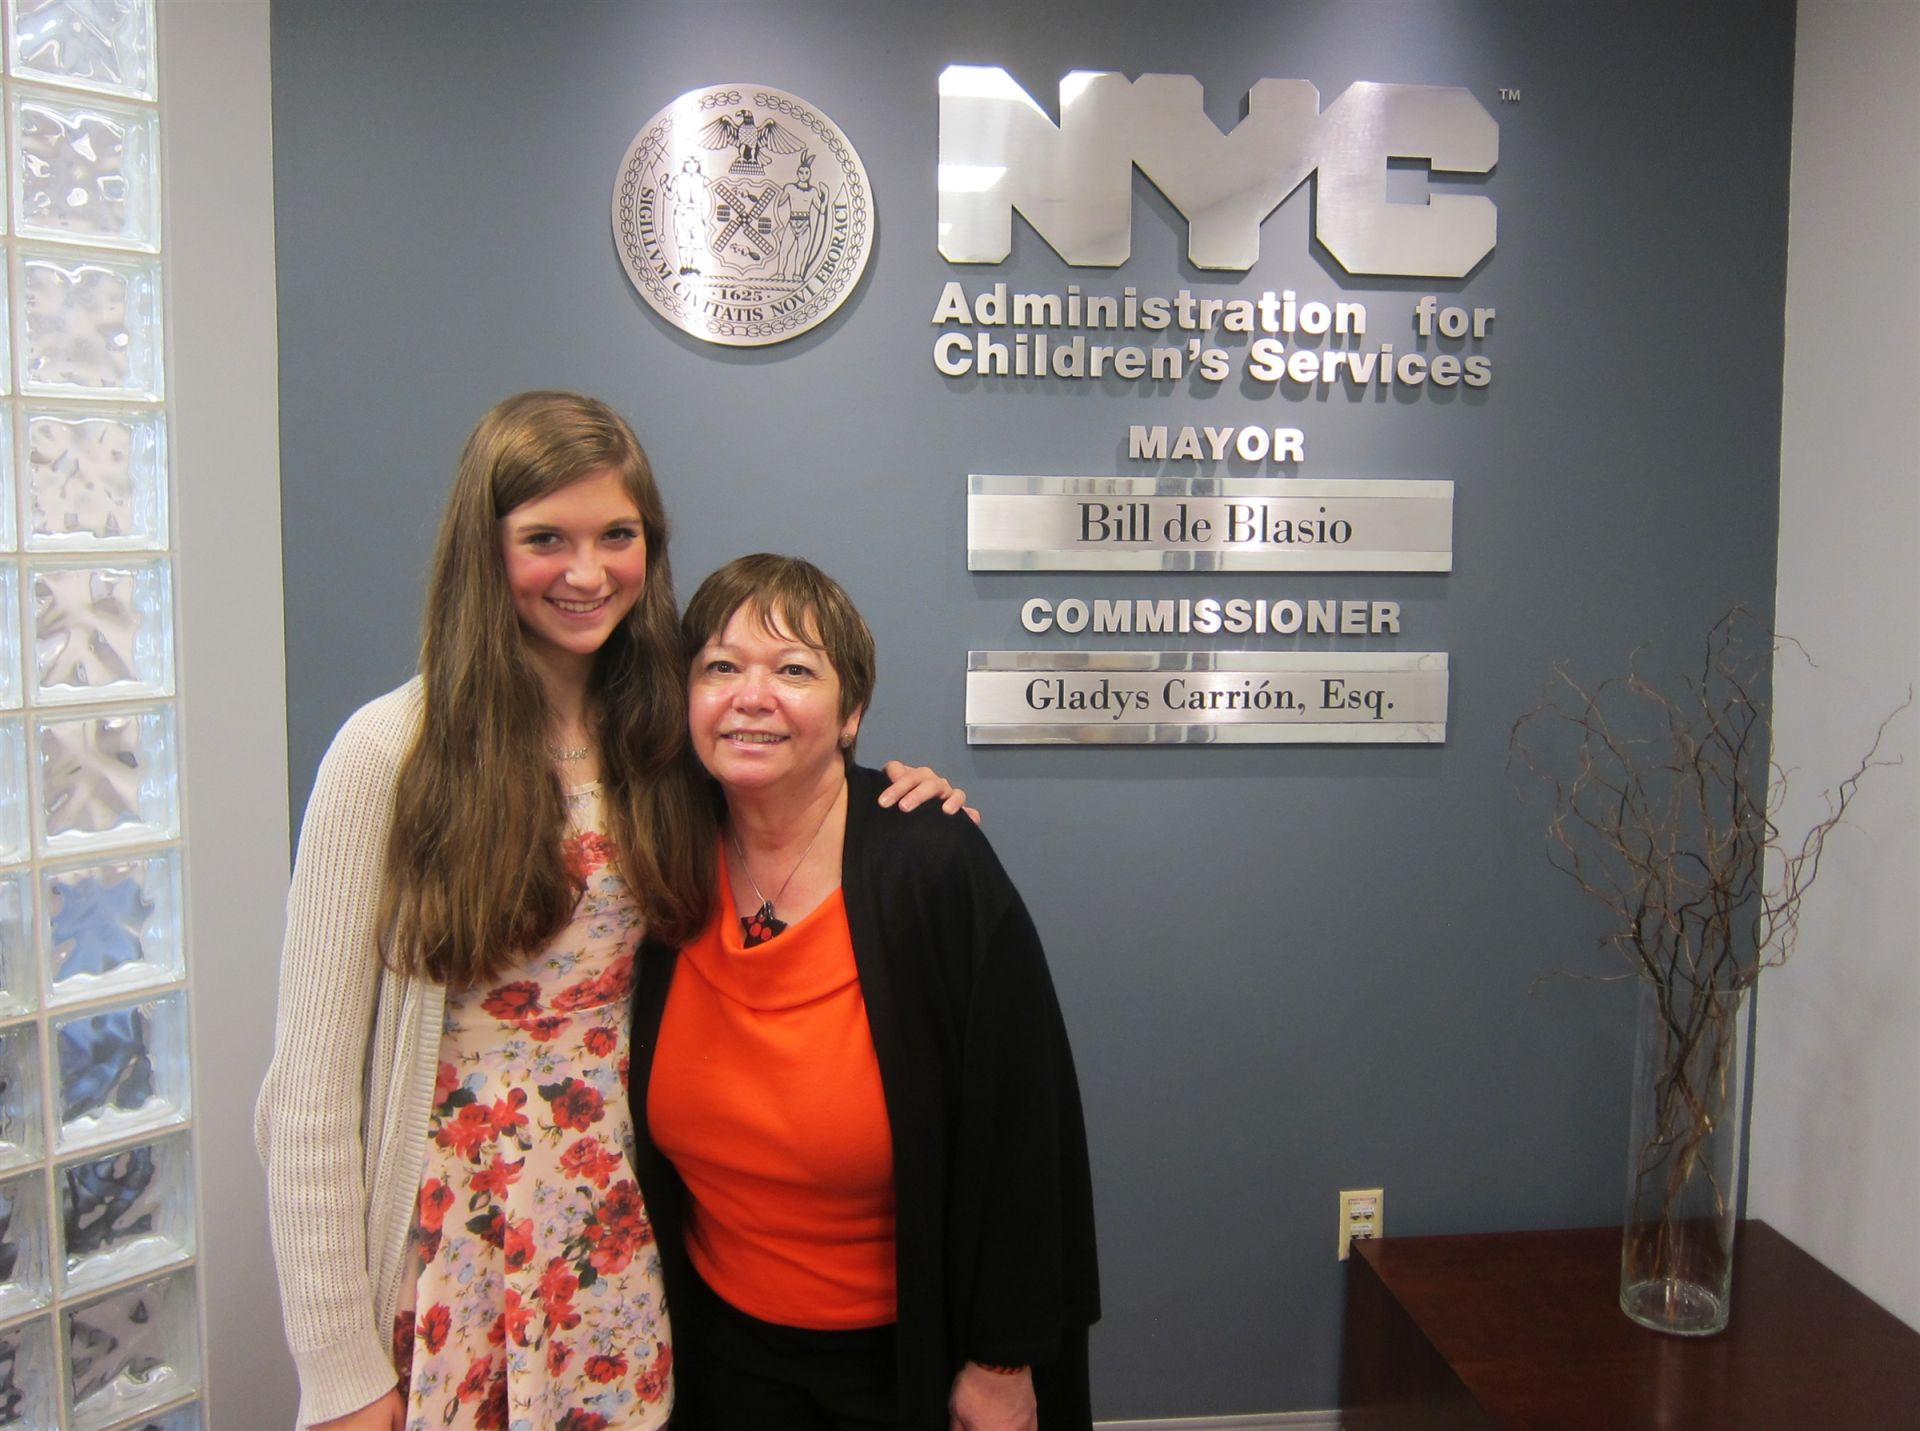 Hope Jackson had the opportunity to meet with Gladys Carrión, Commissioner of the New York City Administration for Children's Services, who was the subject of Hope's Declamation.